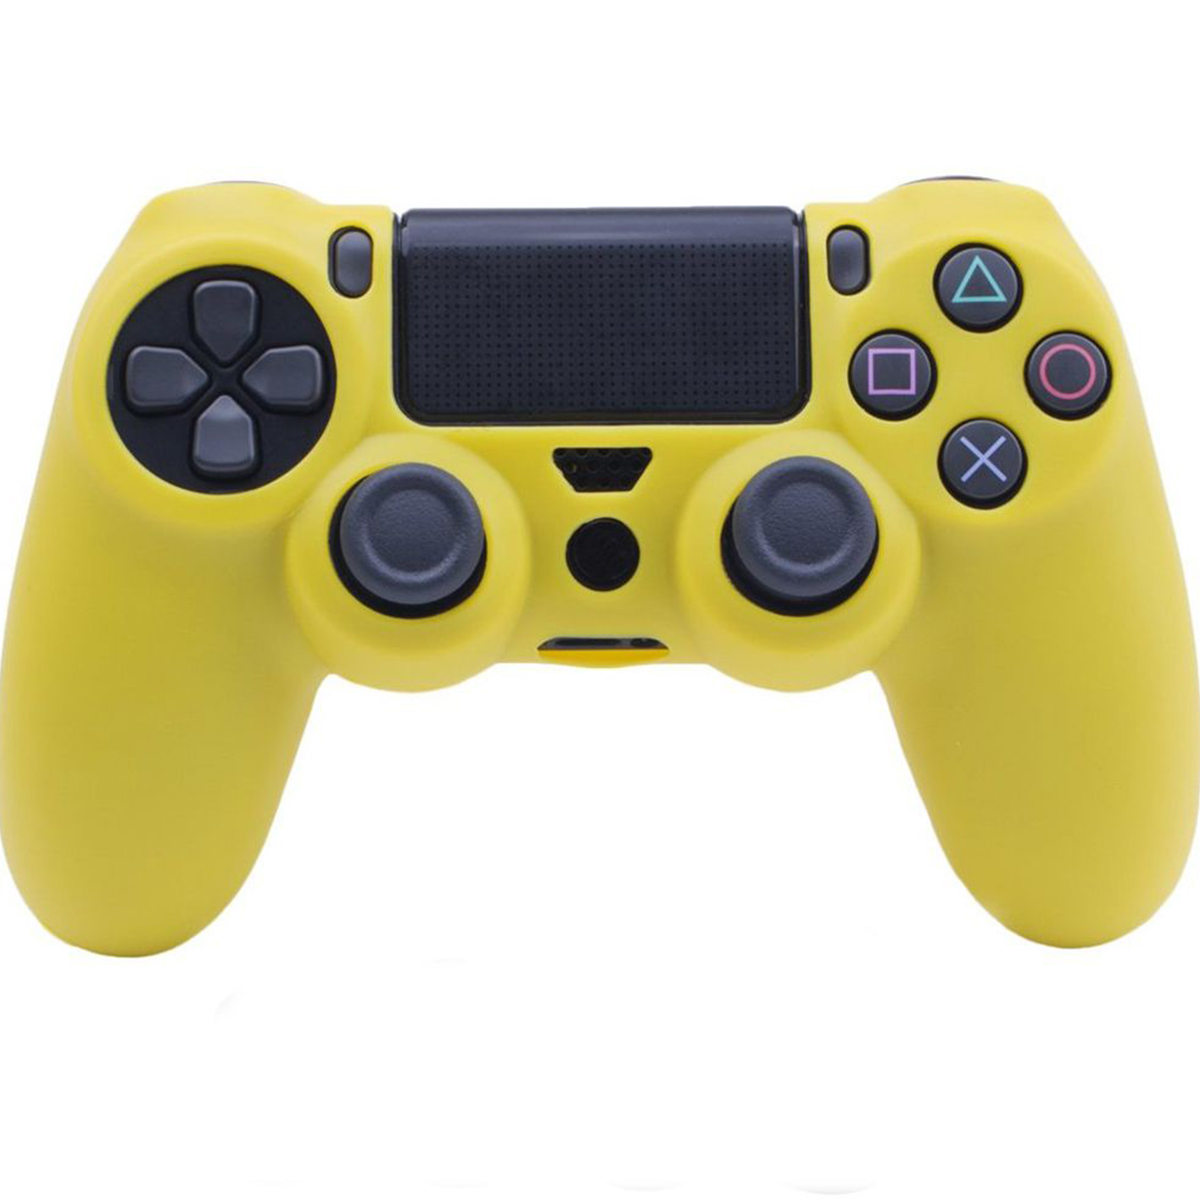 Slim Gamepad Soft Silicone Cover Case Protection For SONY Playstation 4 PS4 Controller Protection Case For PS4 Pro Slim Gamepad